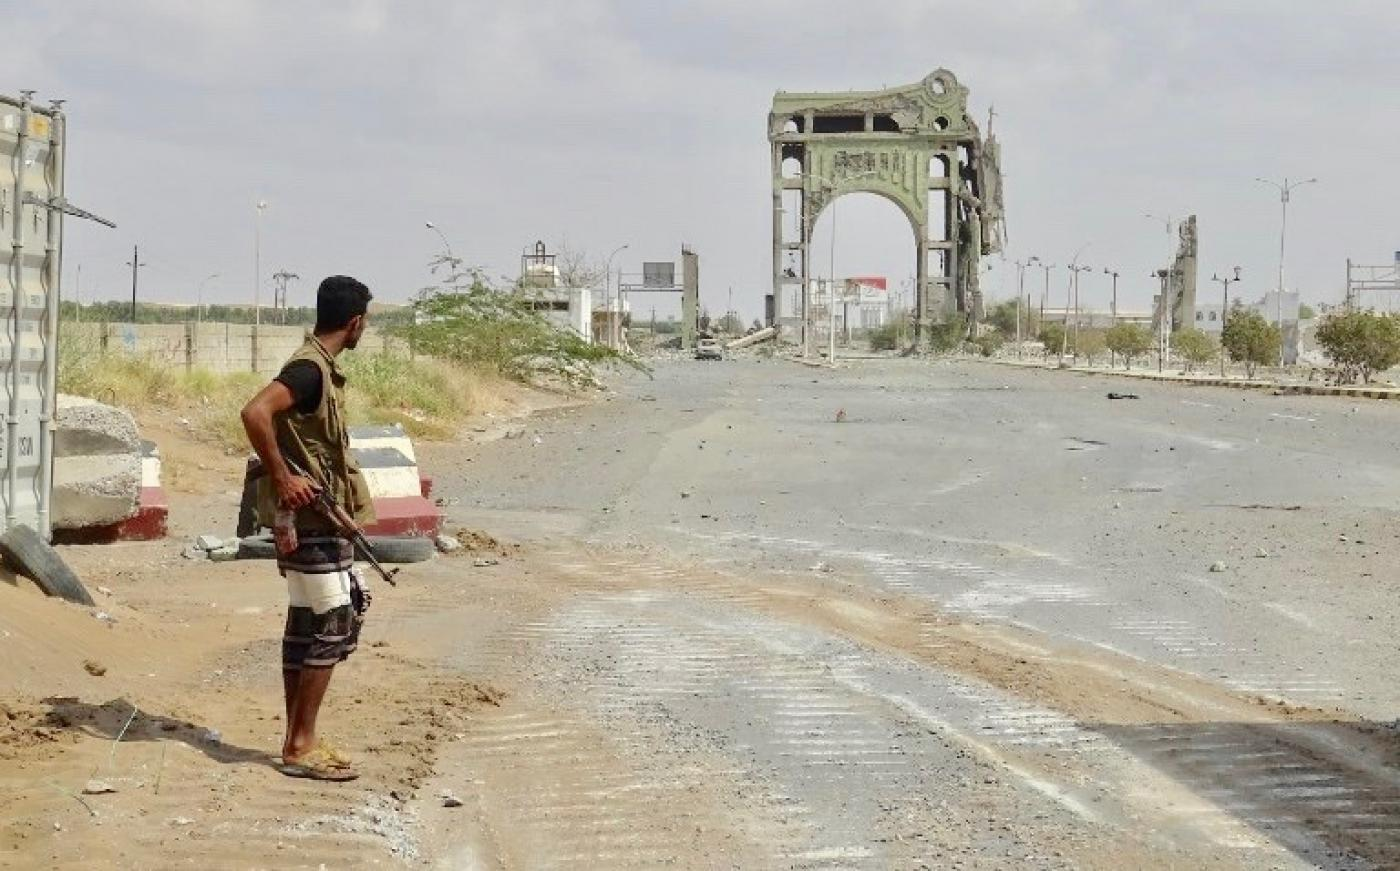 Yemen's Warring Parties Agree to Start Withdrawal from Key Port Hodeidah